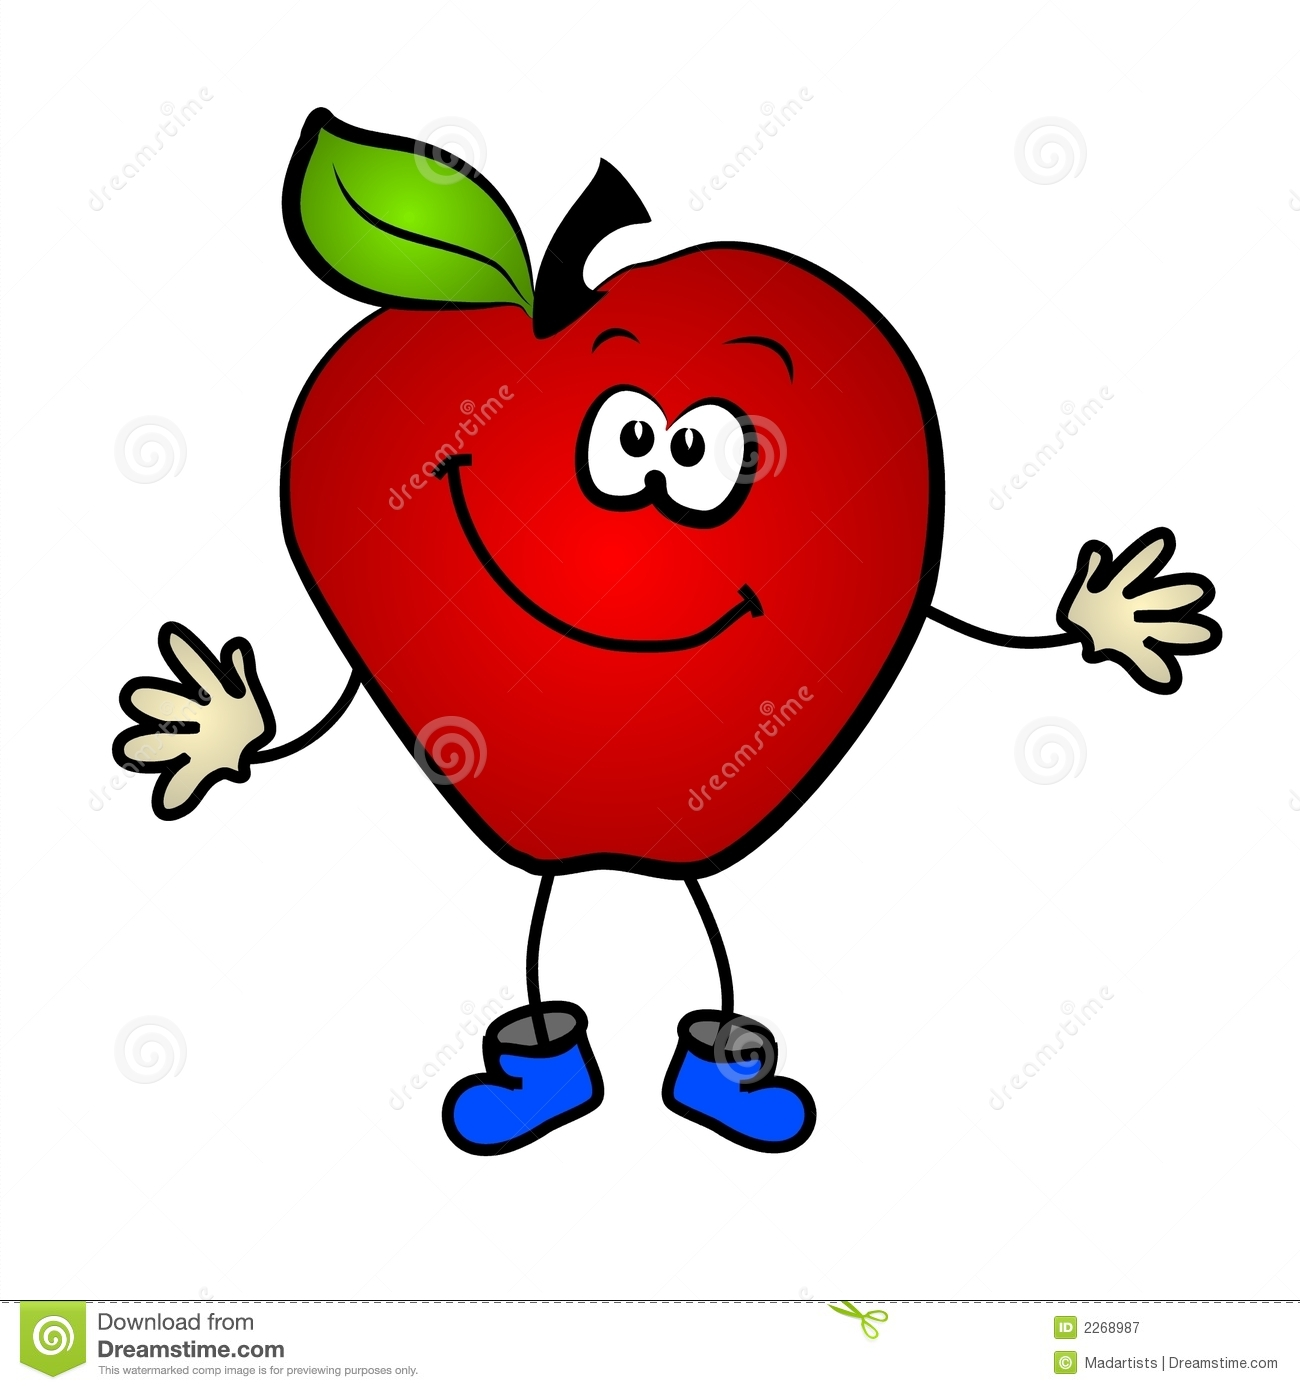 hight resolution of smiling apple cartoon clip art royalty free stock photography